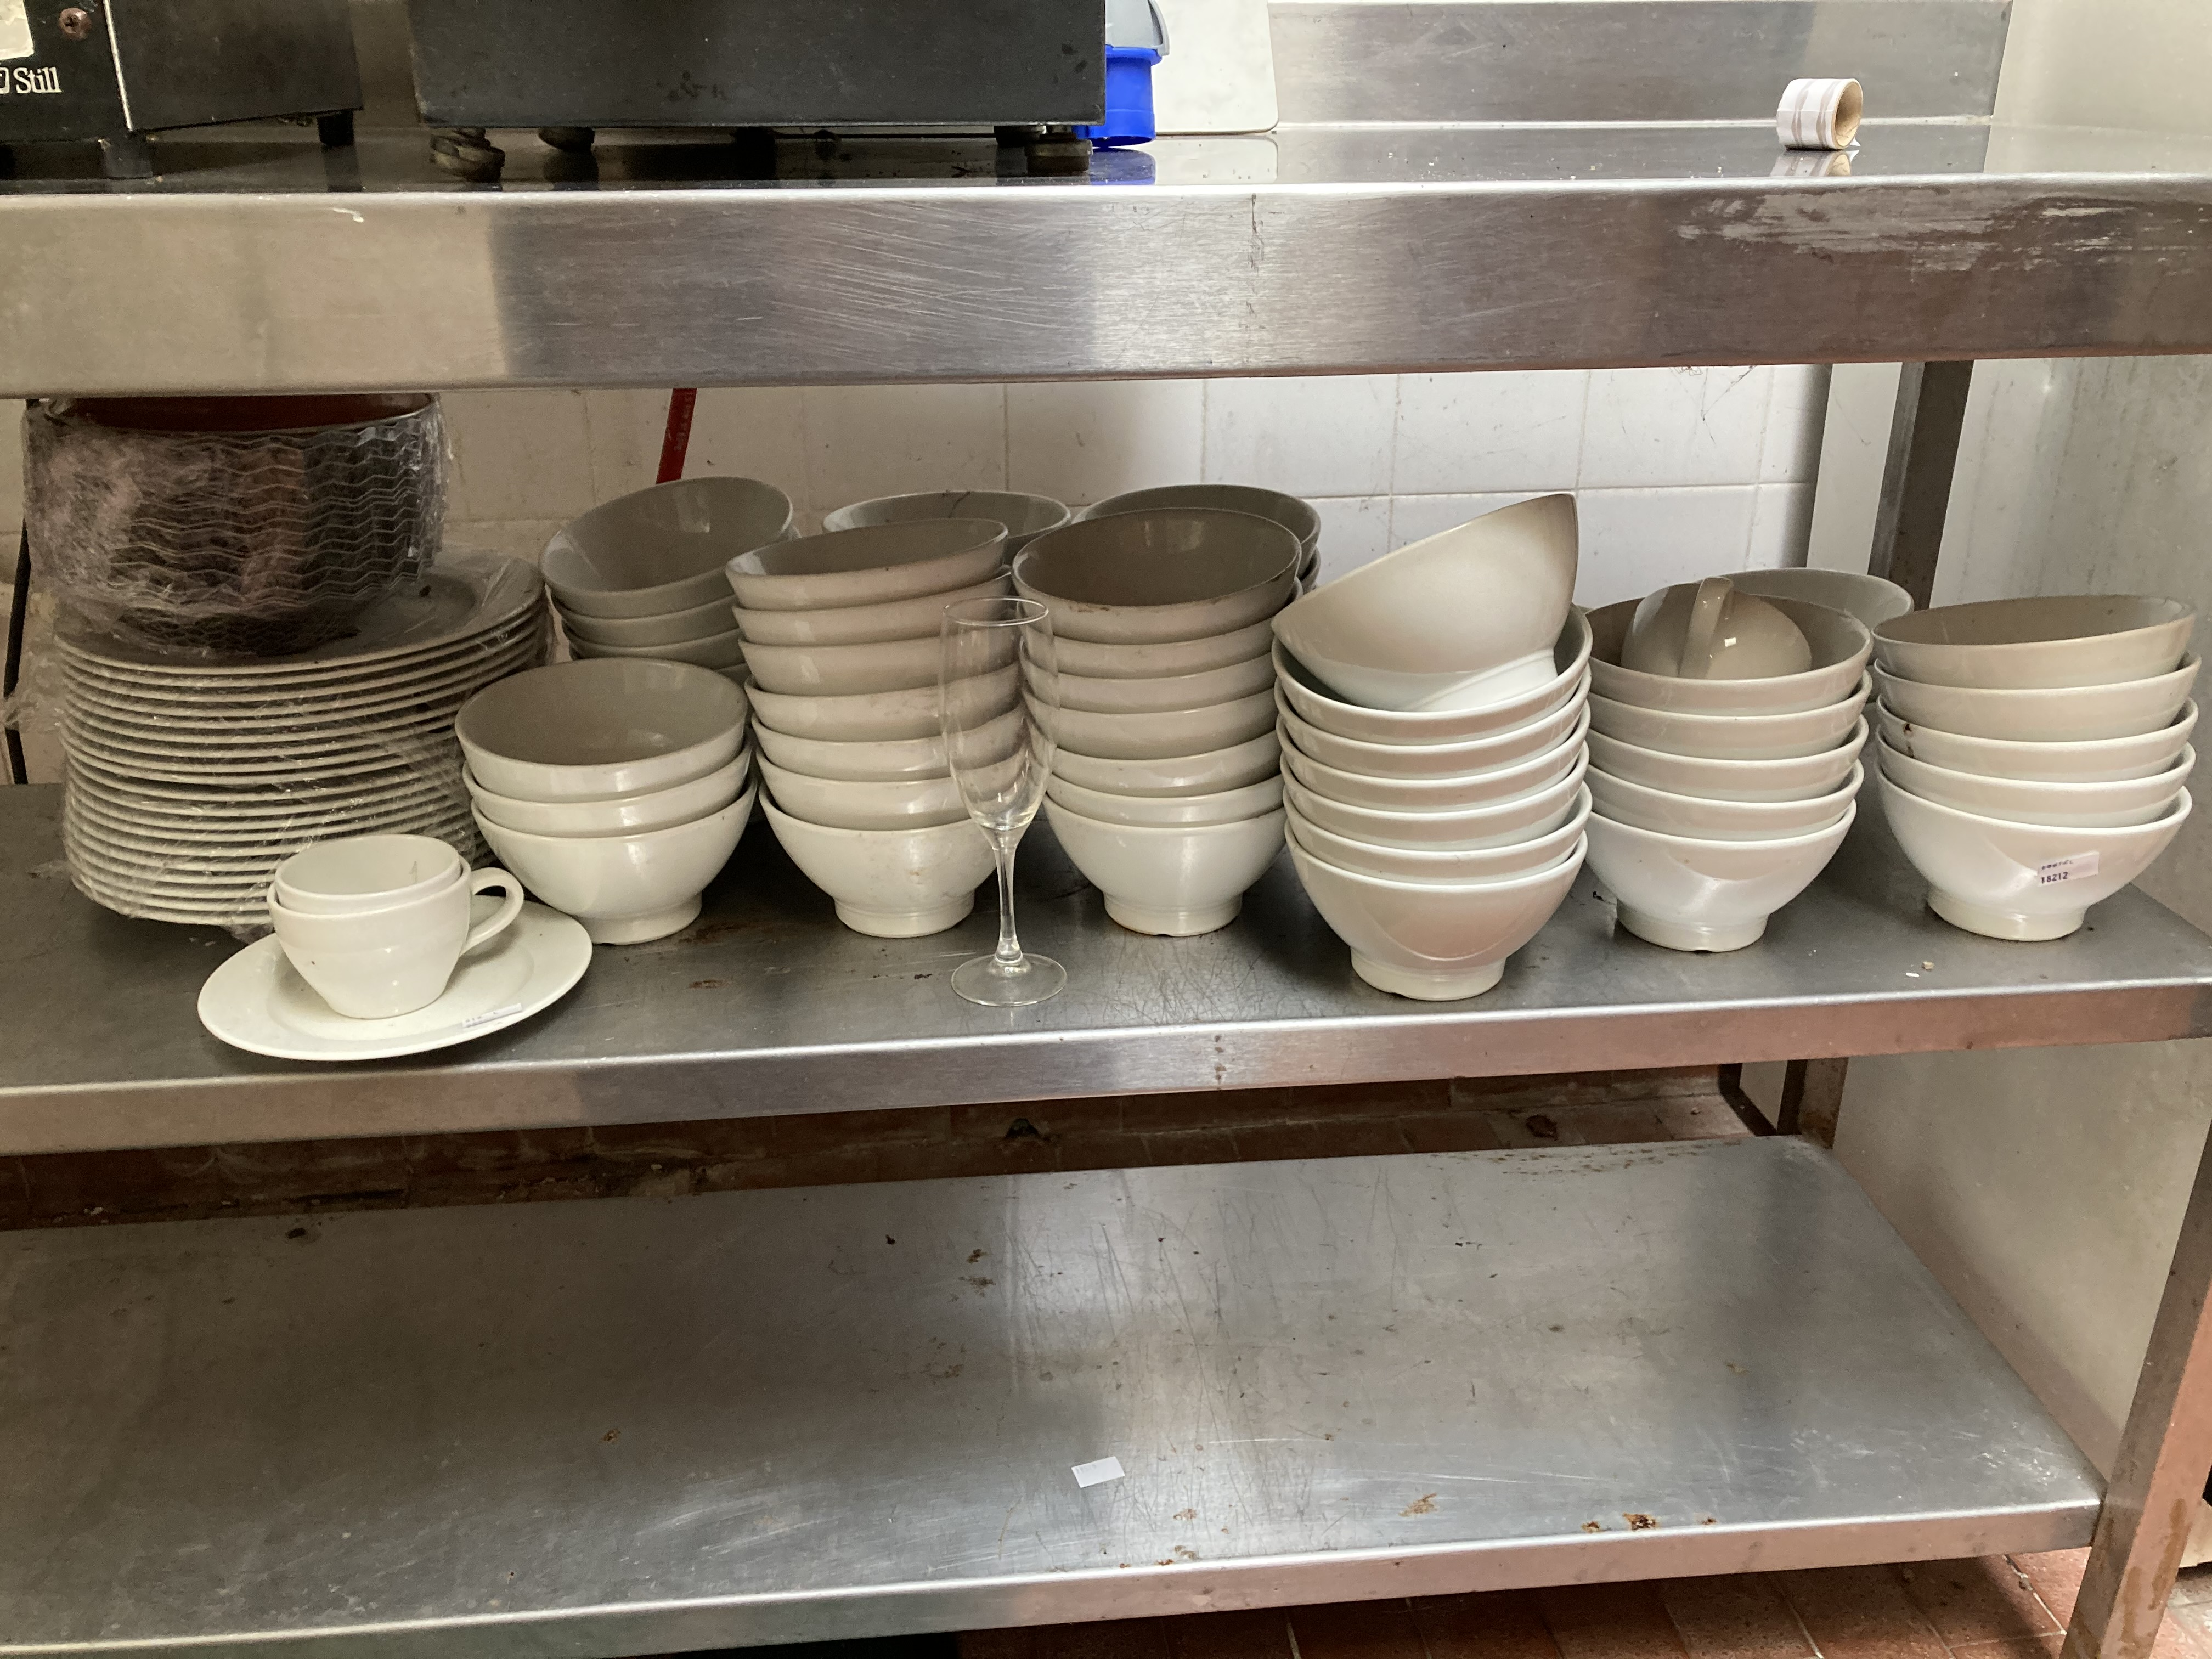 A very large quantity of white Restaurant Crockery, dinner plates, soup bowls, side plates, cups, - Image 2 of 4